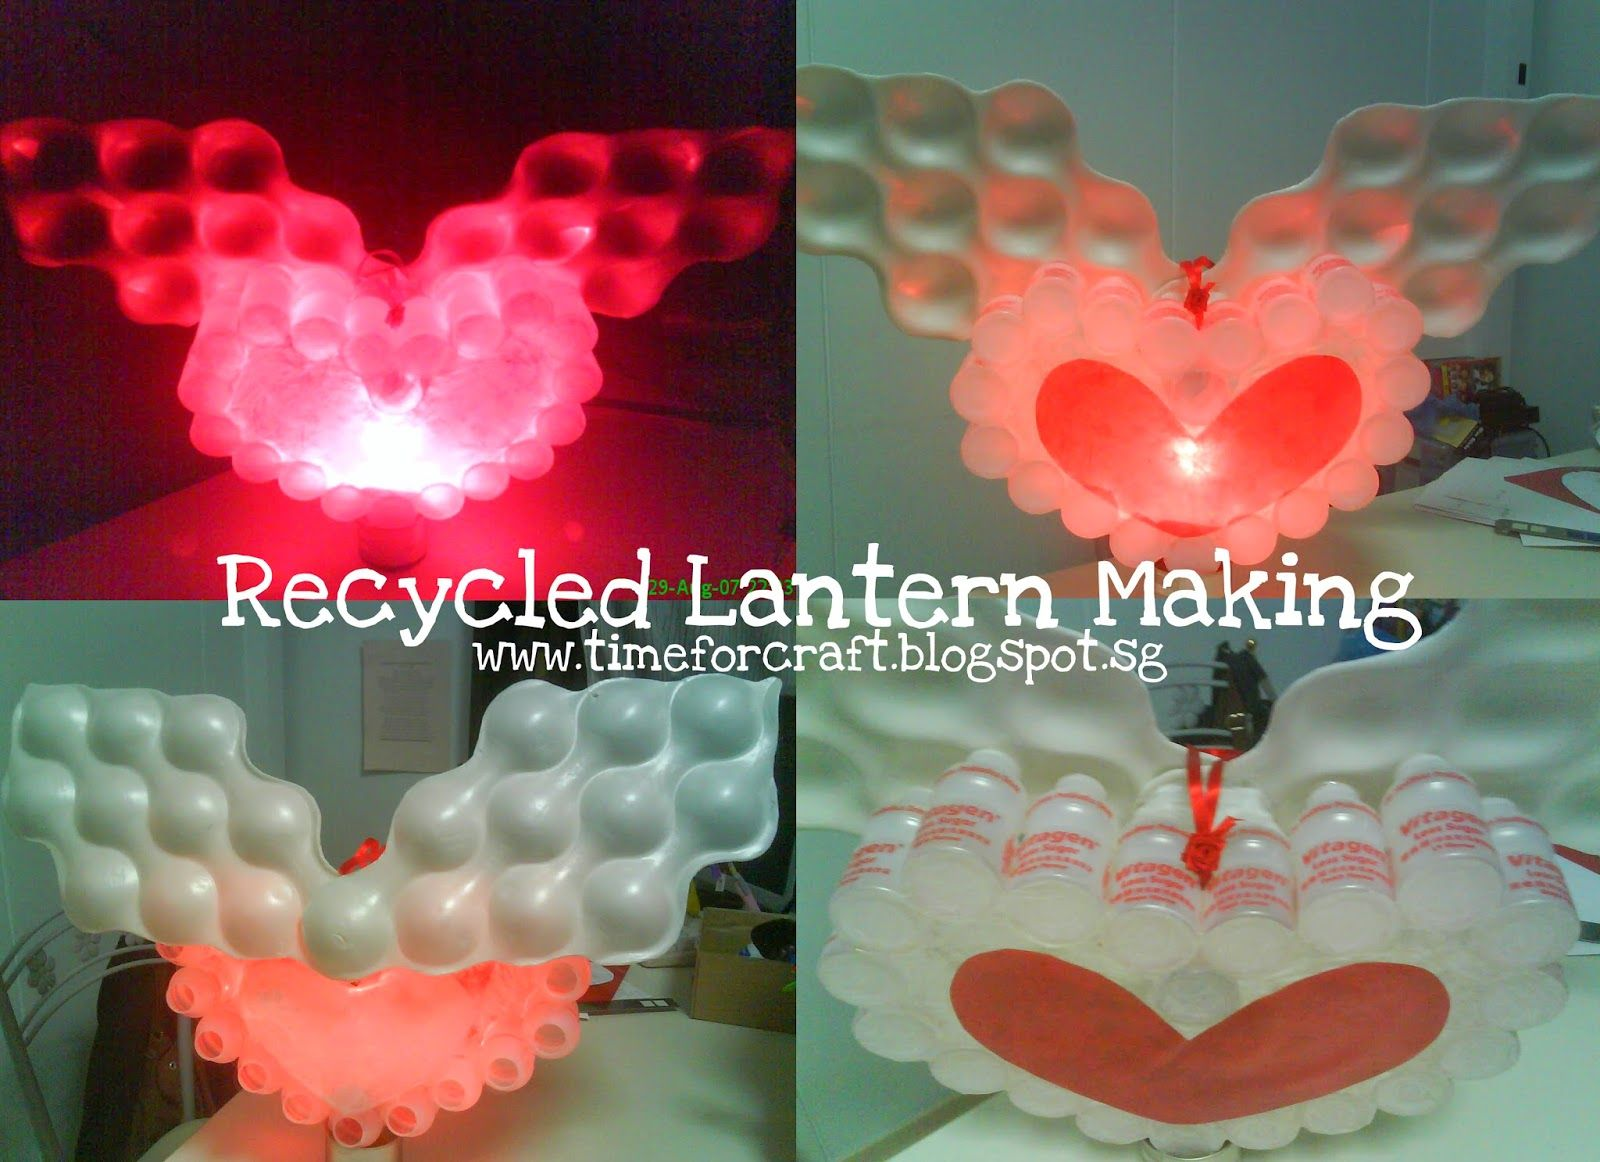 DIY Lantern Making, with recycled materials. www